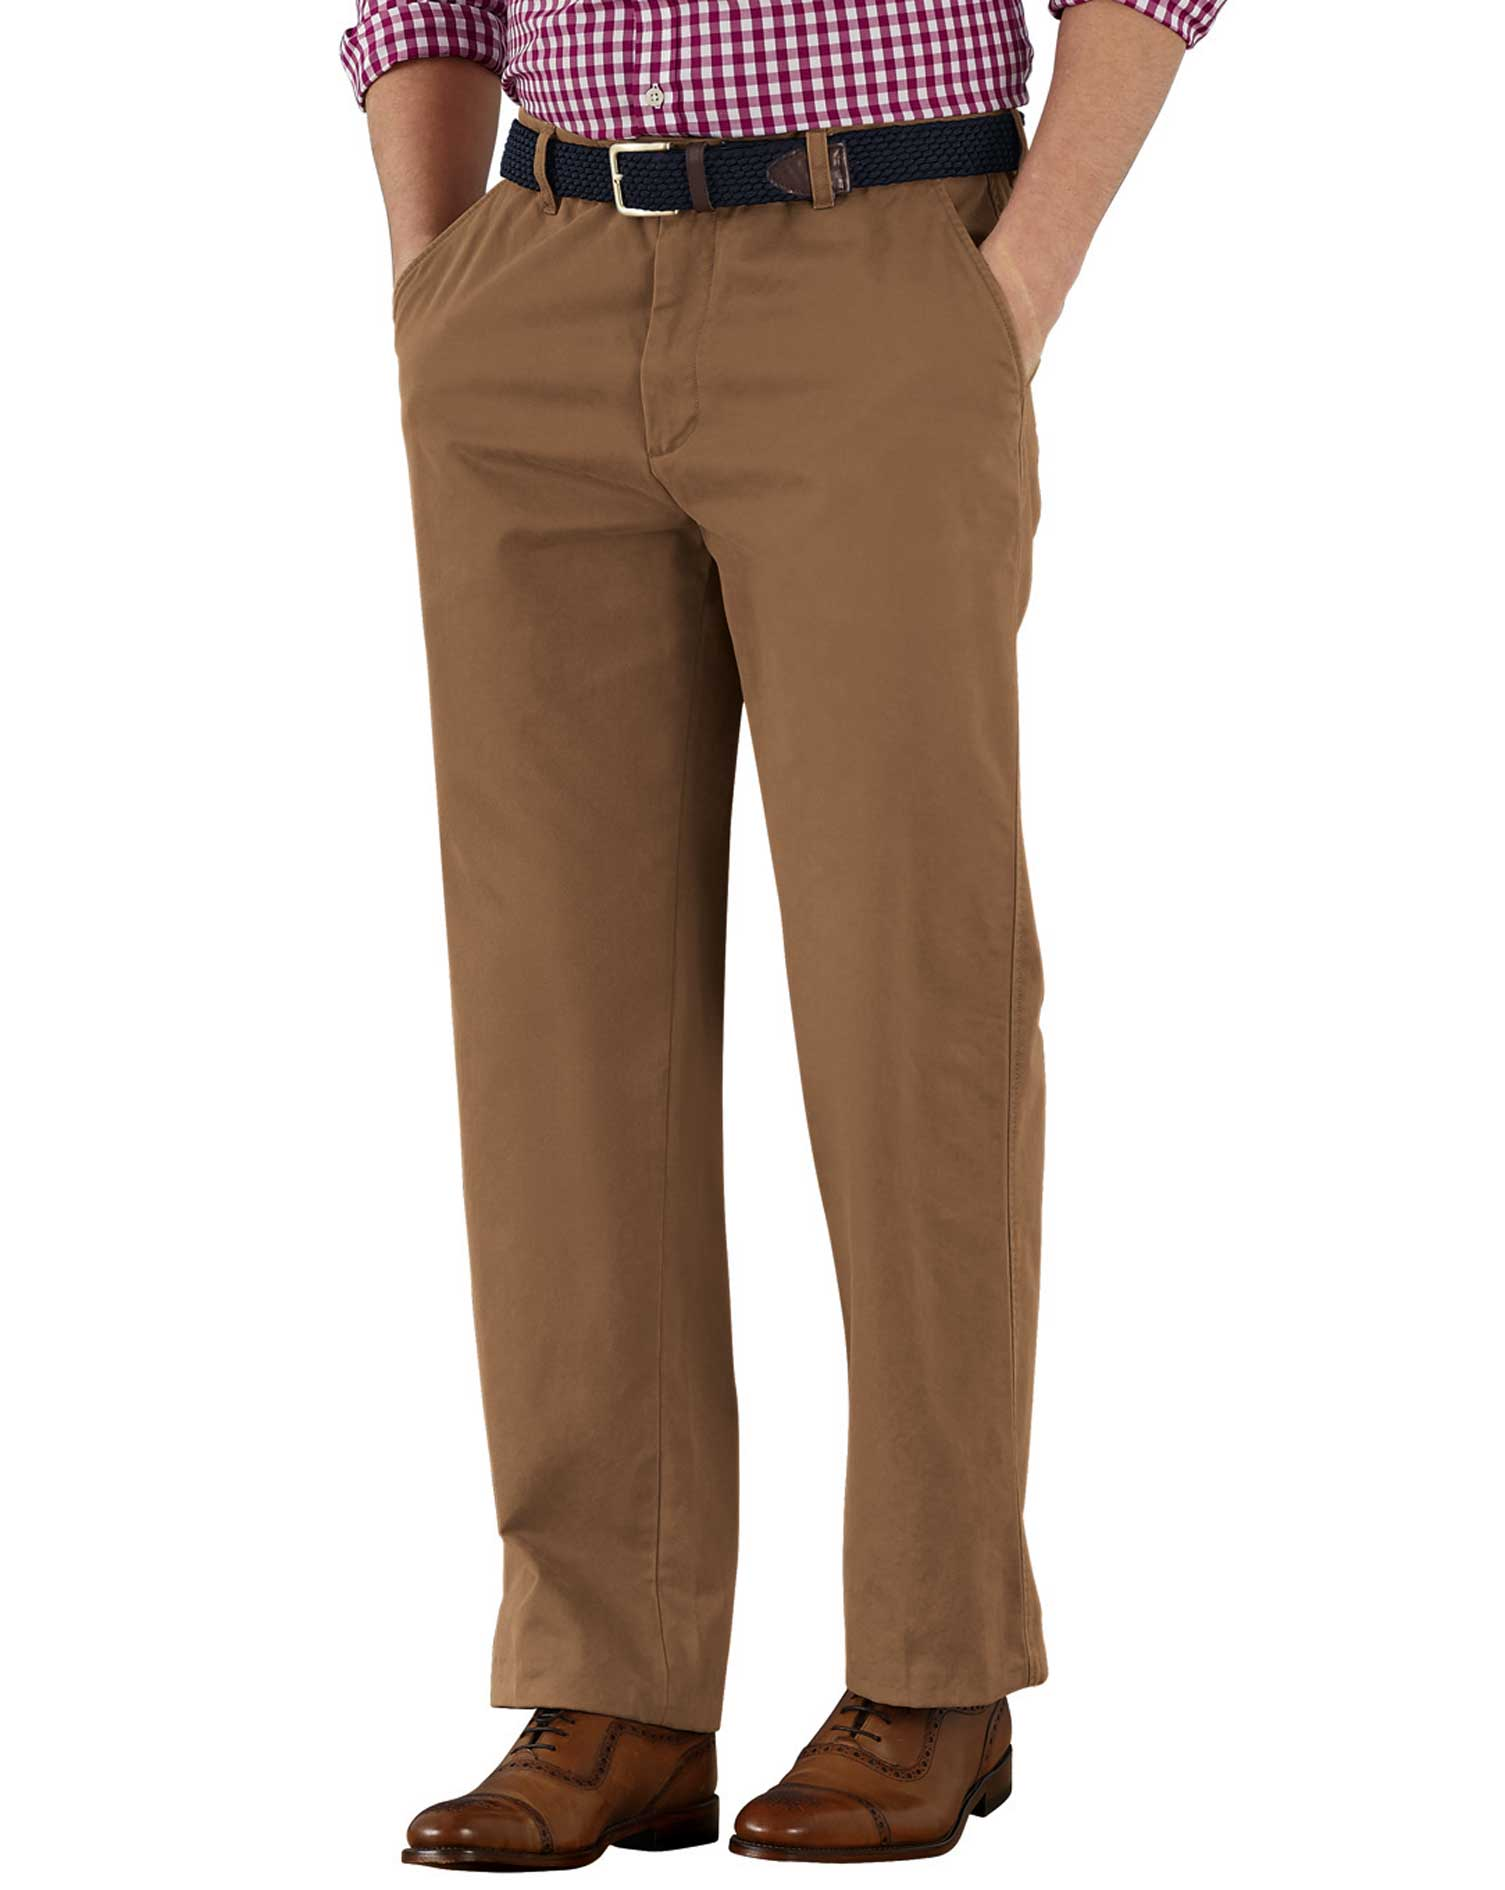 Camel Classic Fit Flat Front Cotton Chino Trousers Size W34 L29 by Charles Tyrwhitt